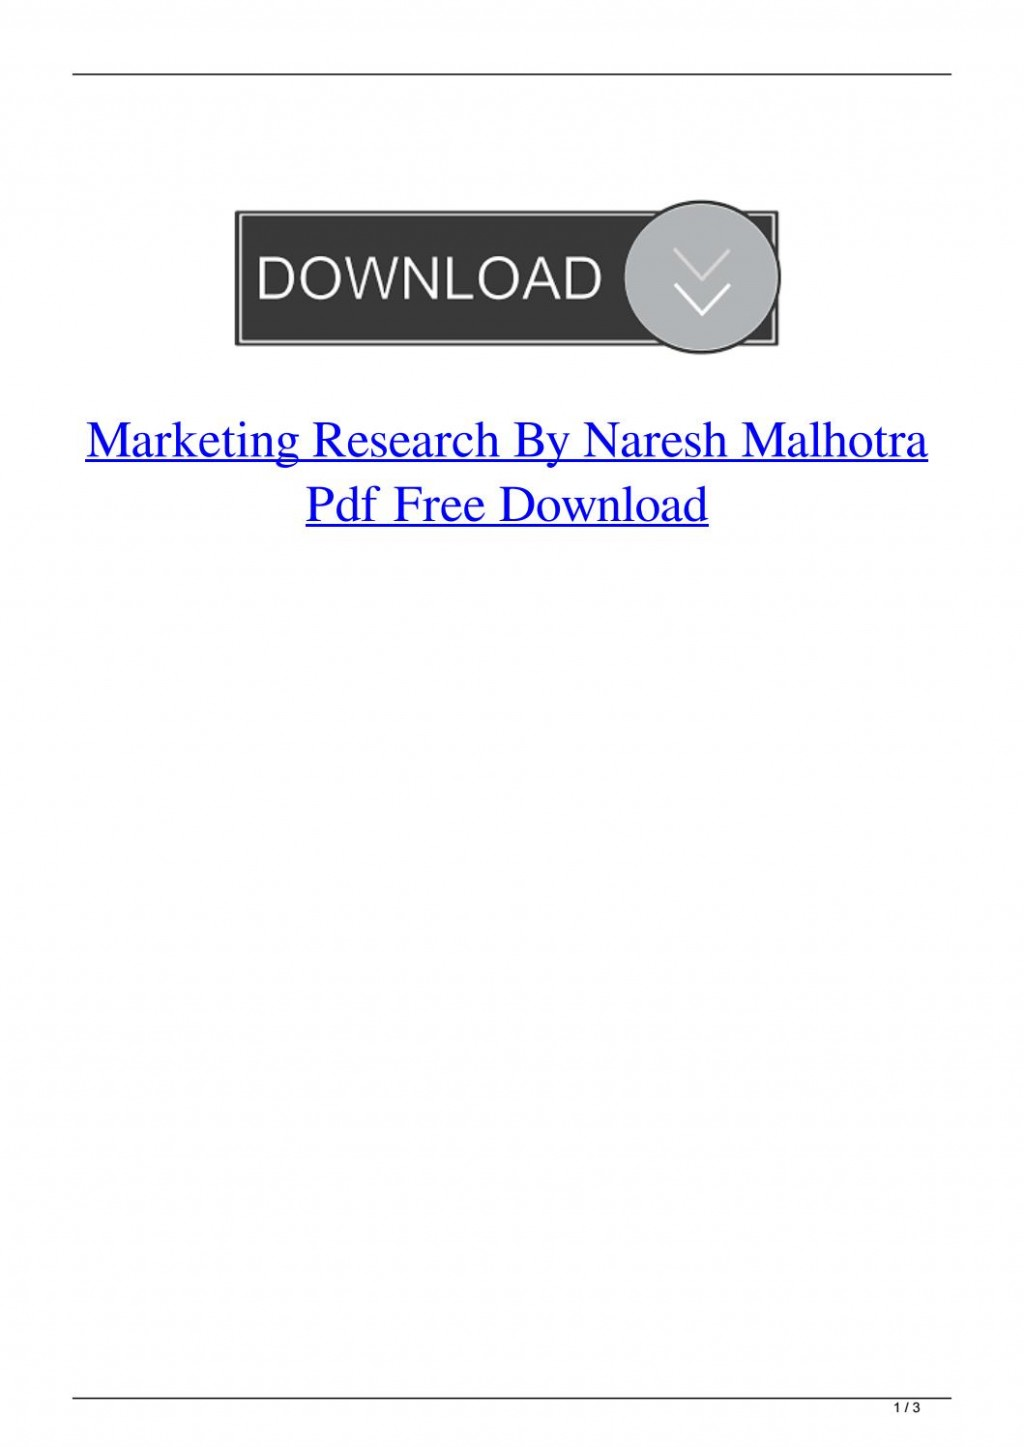 004 Research Paper Marketing Papers Pdf Free Download Page 1 Impressive Large